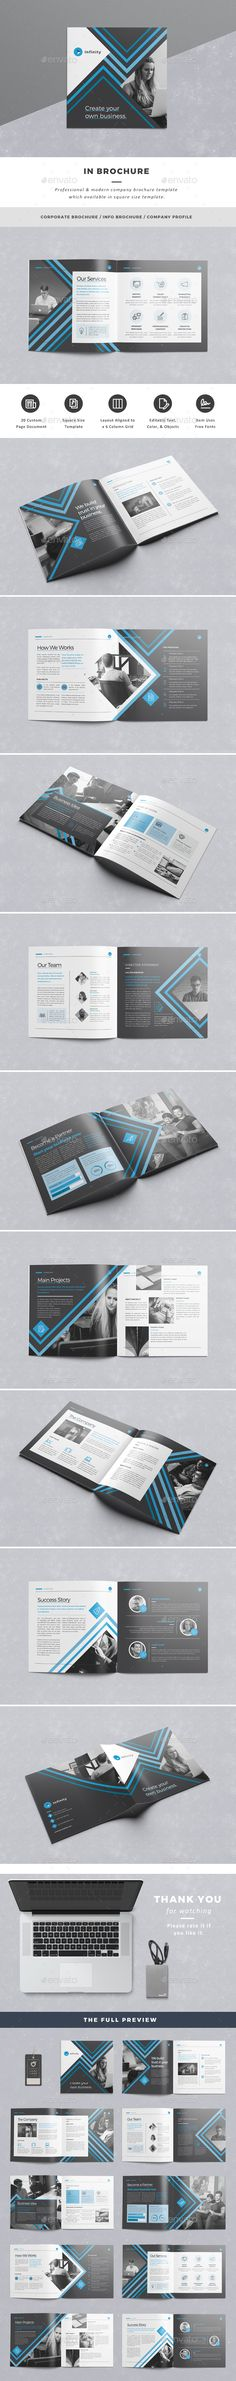 In Brochure Templates InDesign INDD. Download here: http://graphicriver.net/item/in-brochure/16329033?ref=ksioks